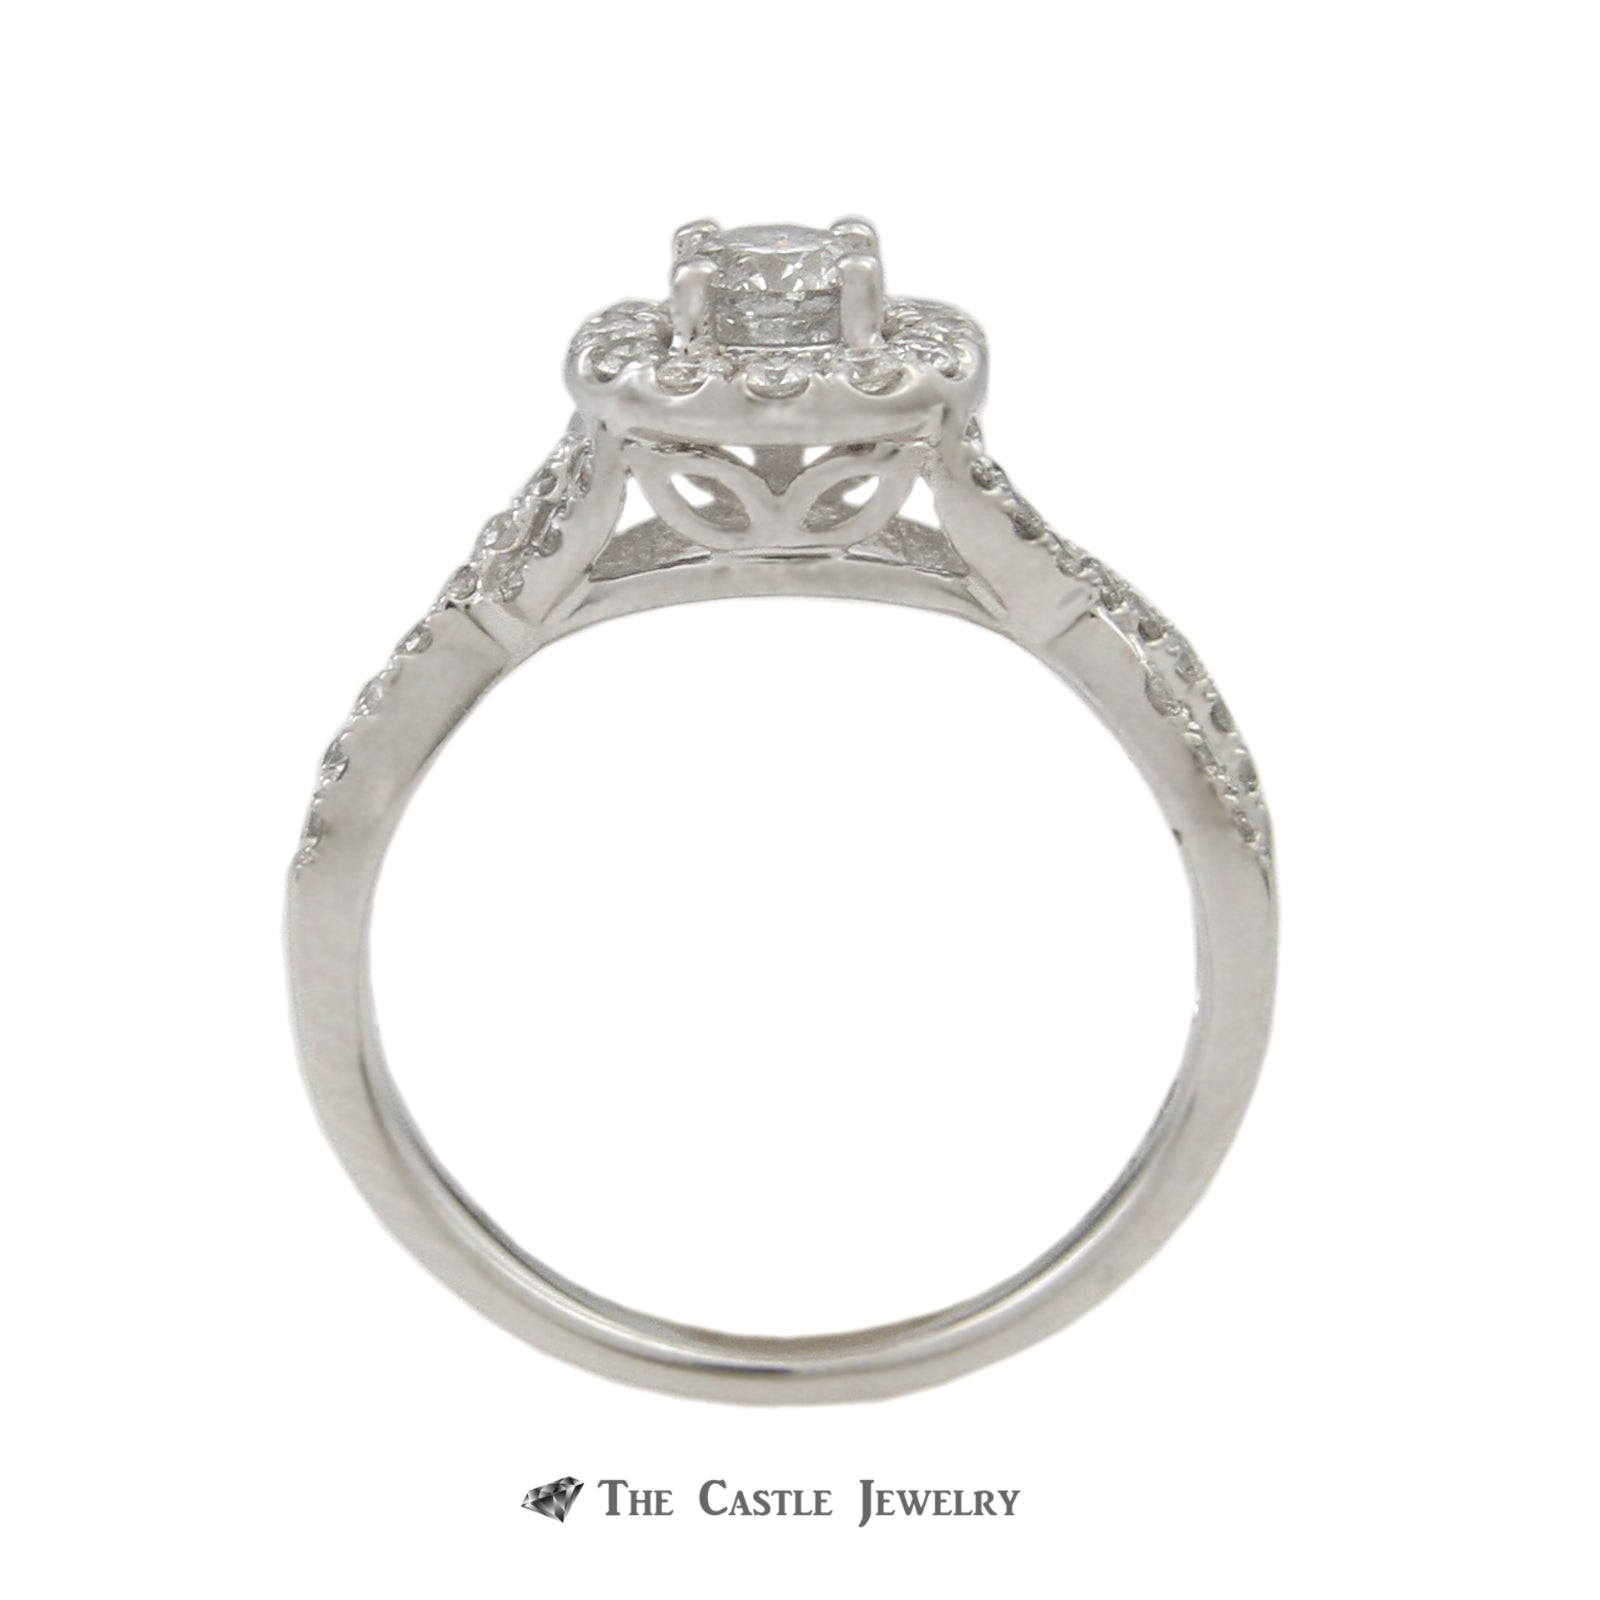 SPECIAL! Crown Collection 1cttw Bridal Set Round Diamond Center w/ Diamond Bezel & Cross Over Sides-1